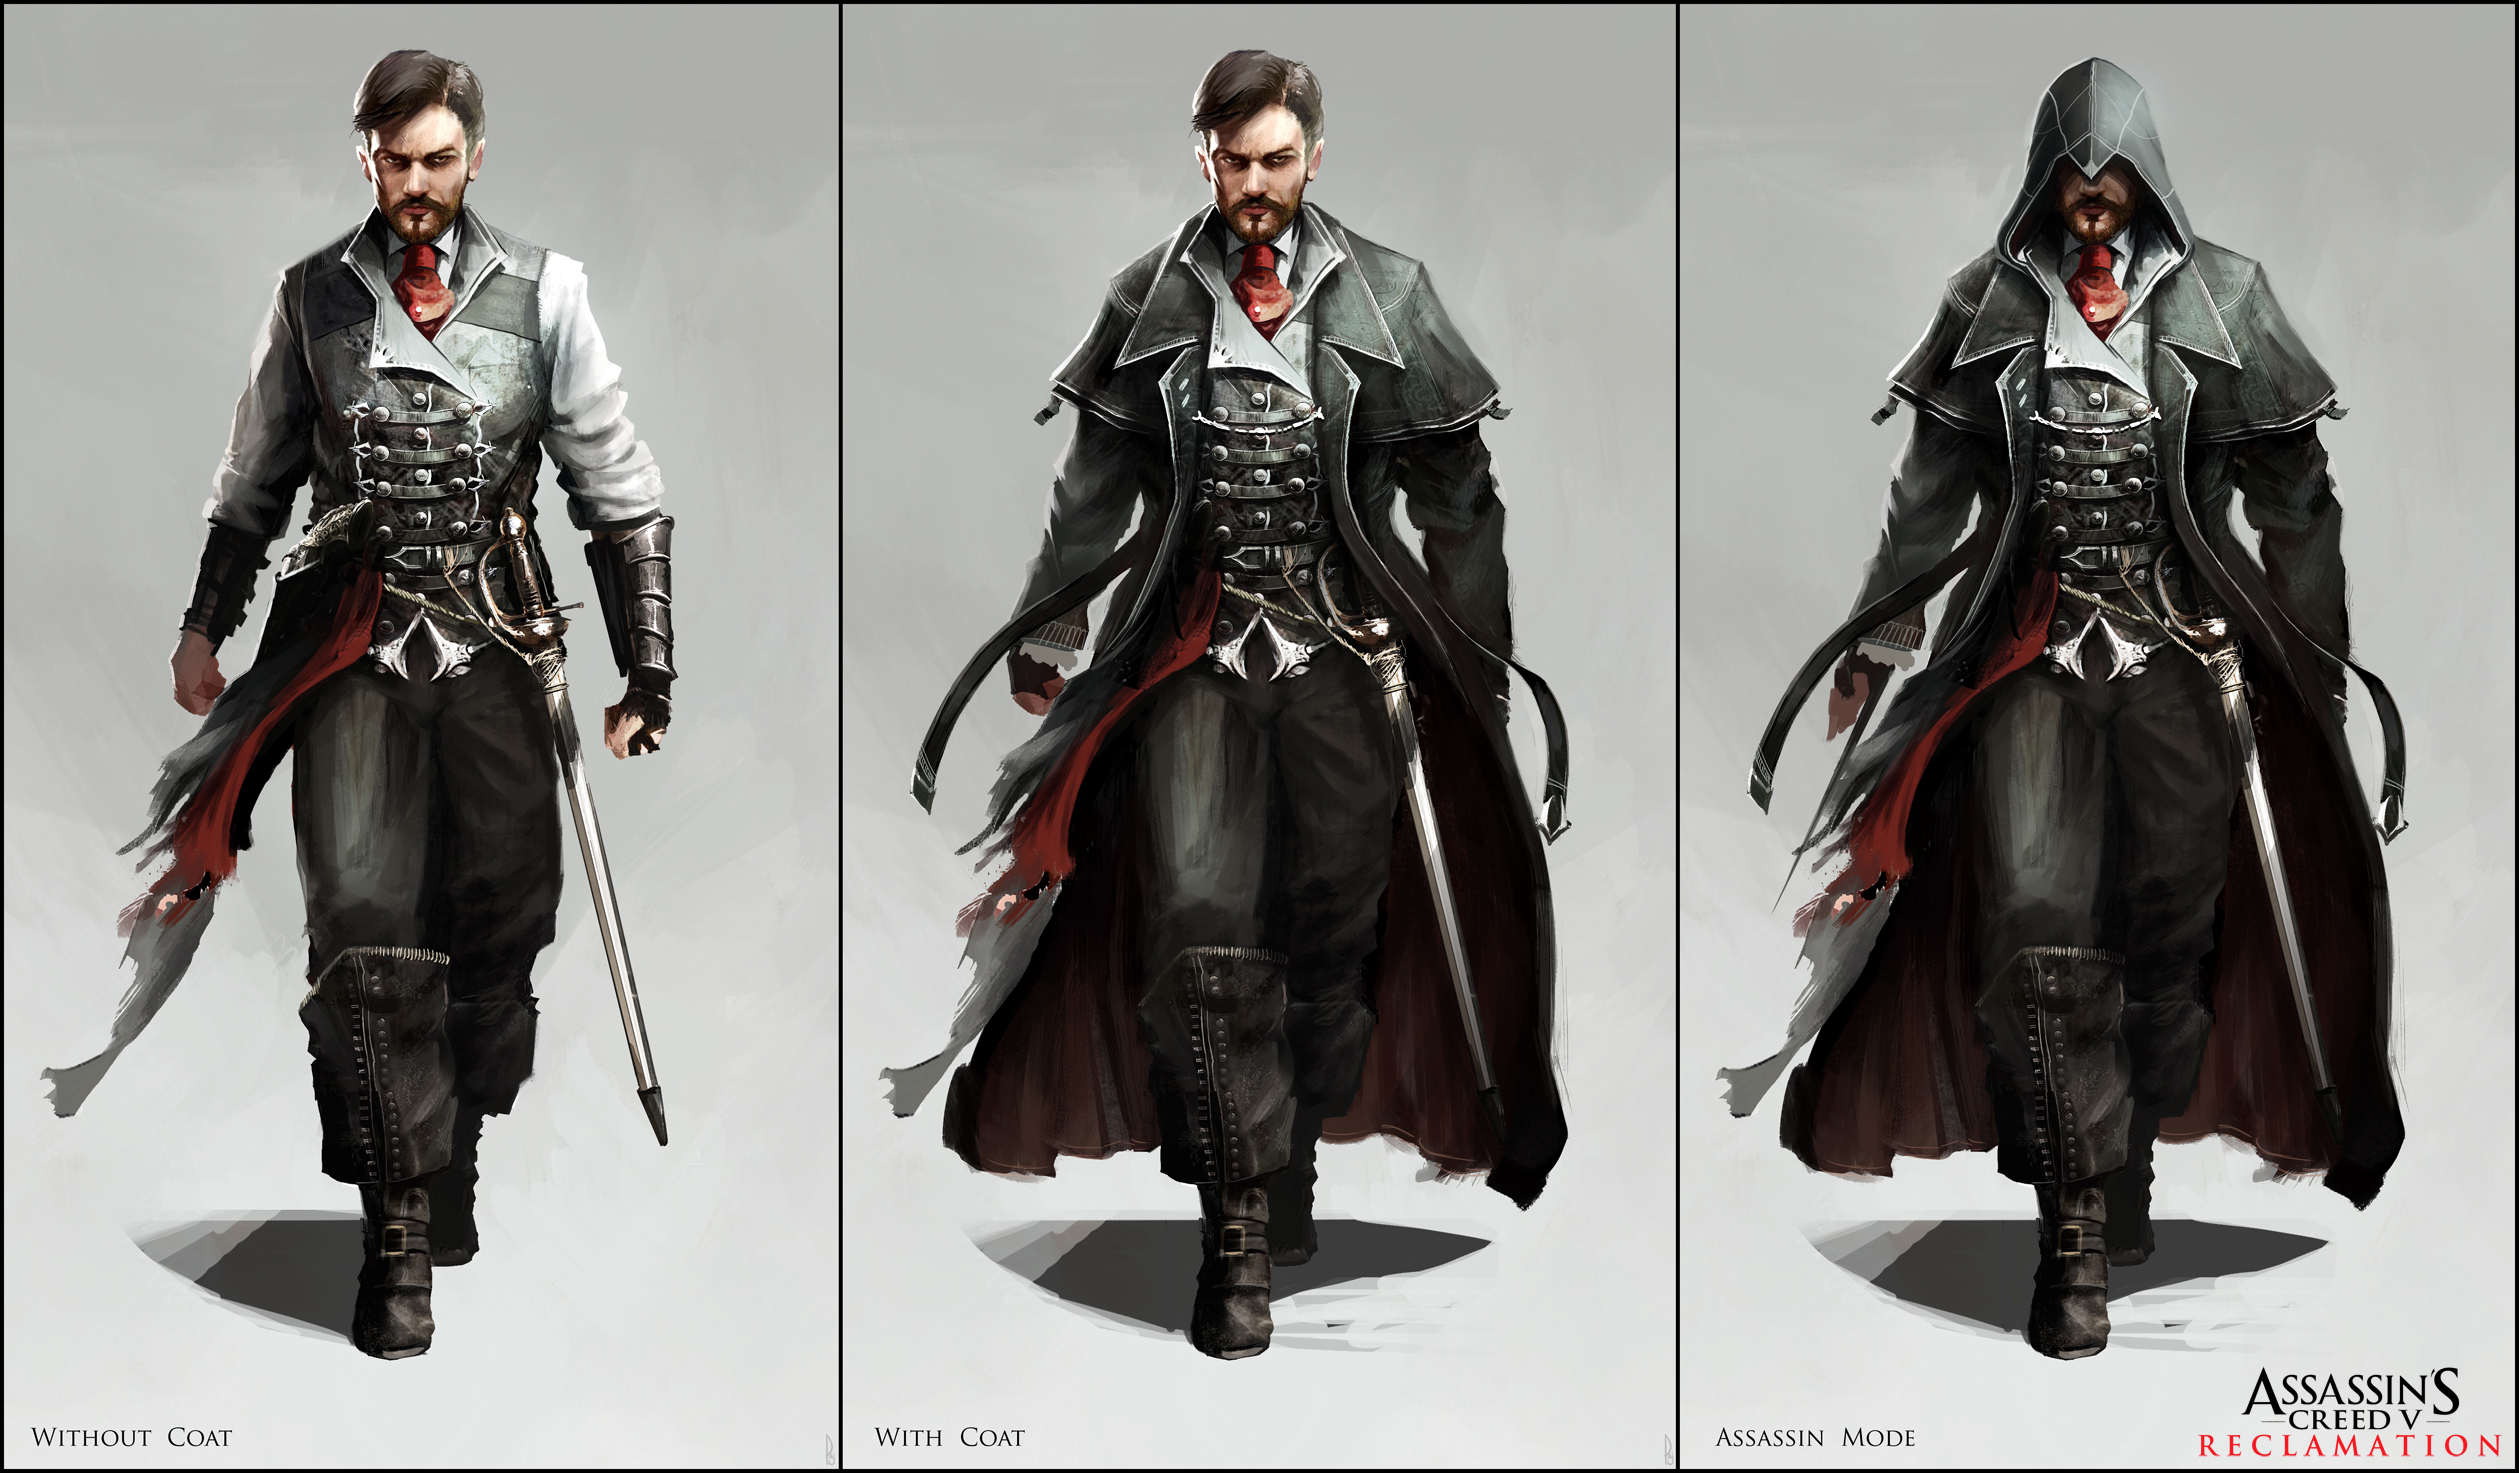 Character Design Unity : Assassin s creed v character designs by happy mutt on